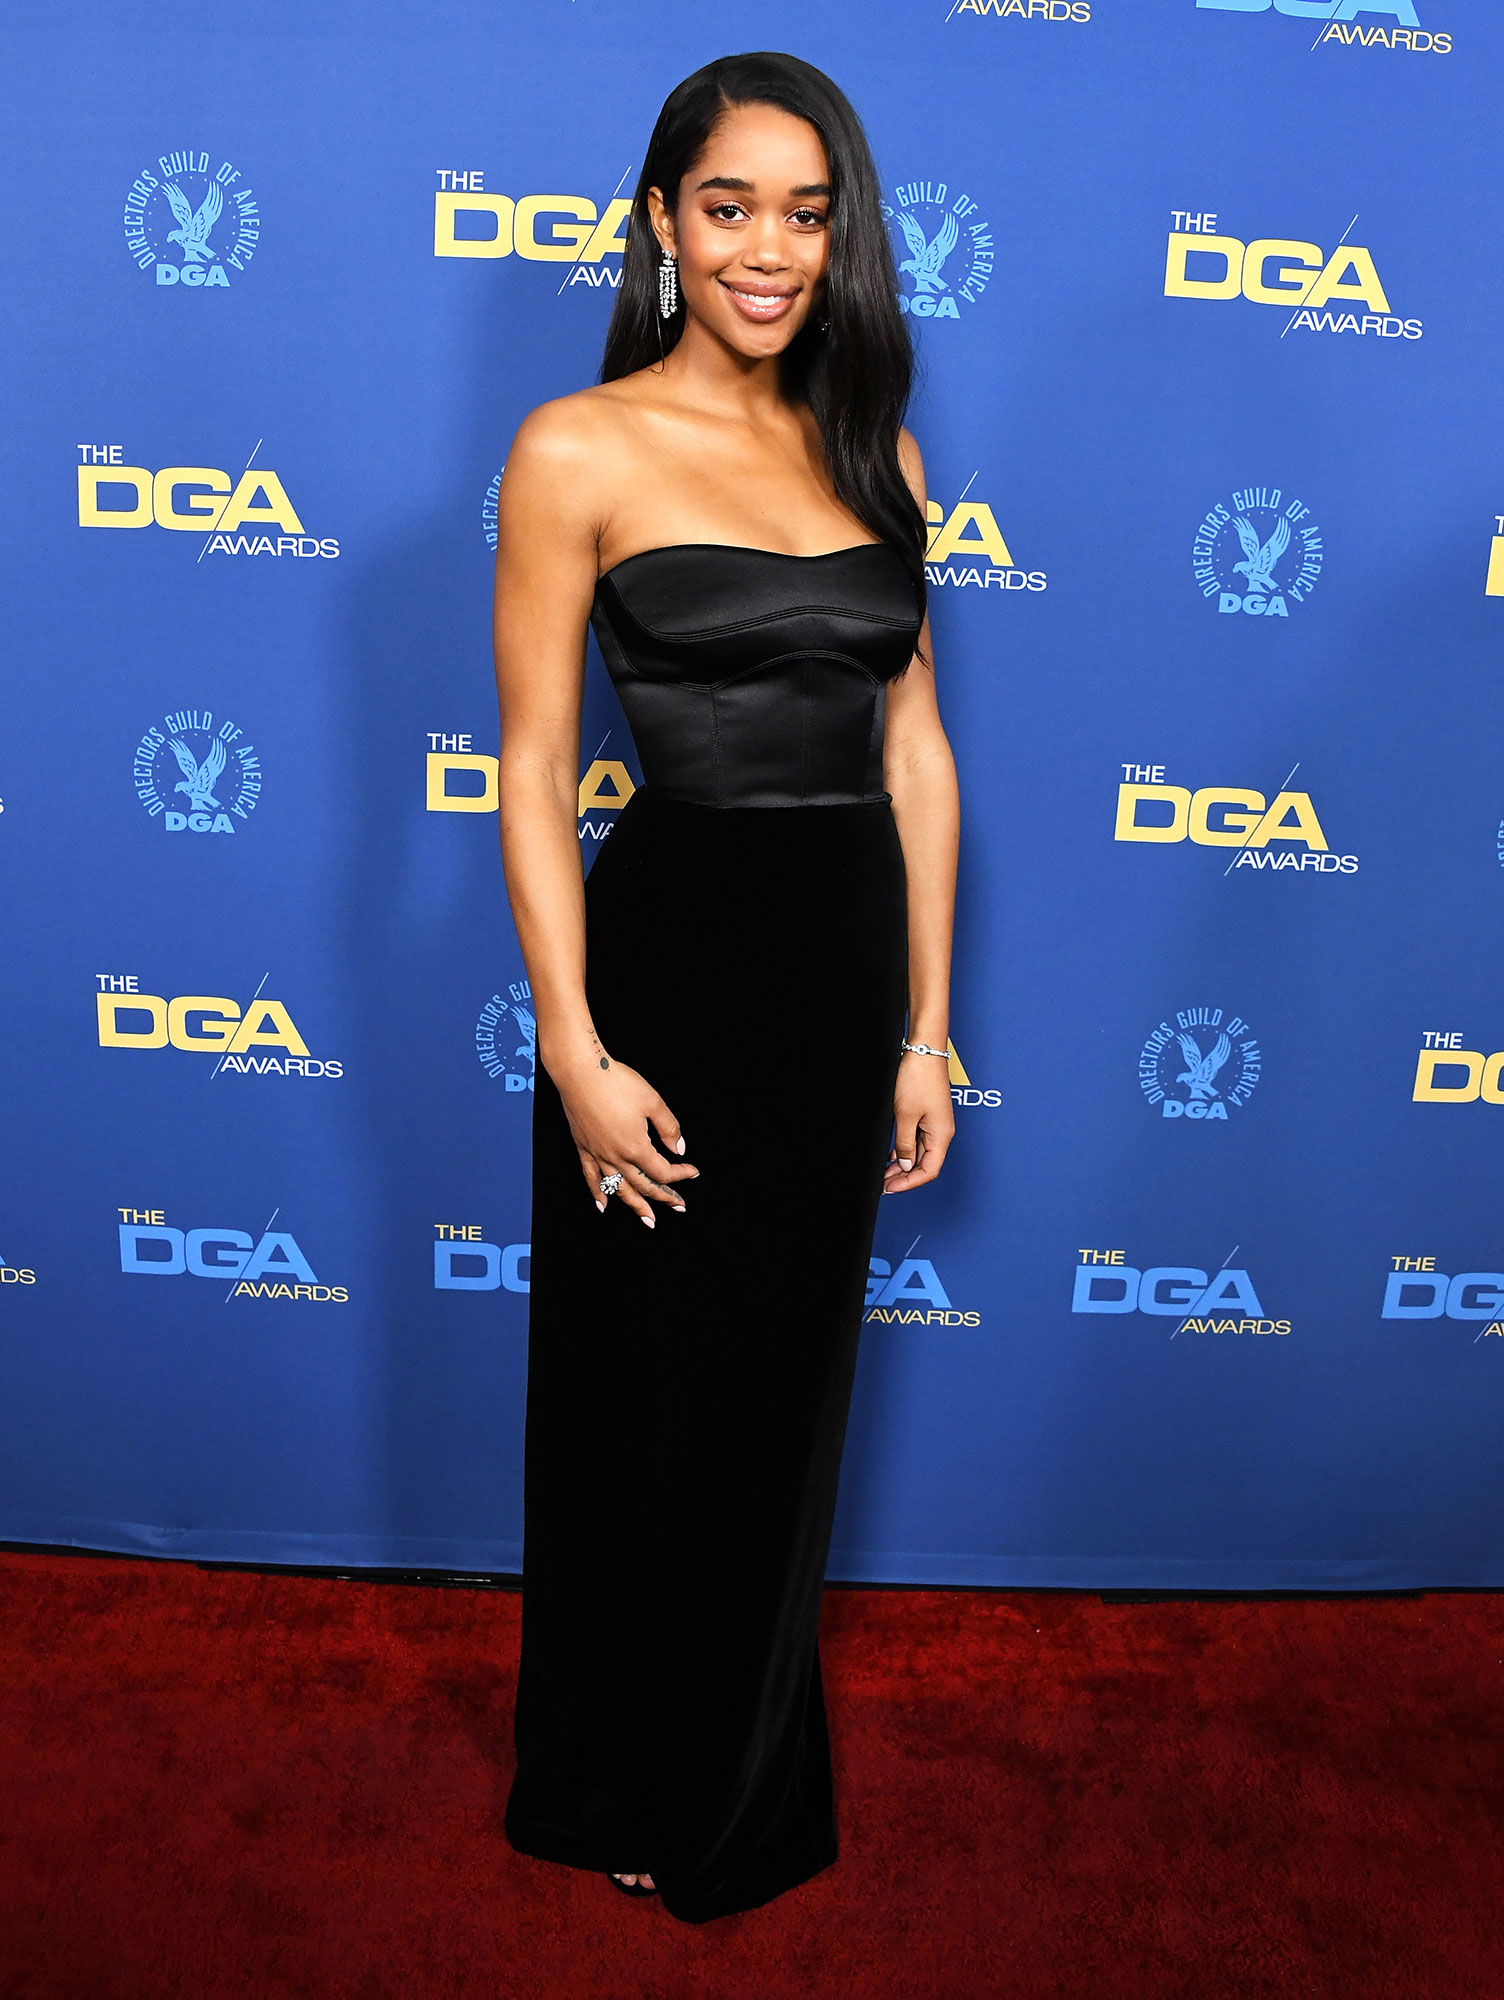 Laura Harrier attends the 71st Annual Directors Guild Of America Awards at The Ray Dolby Ballroom at Hollywood - The Blackkklansman actress wore a sleek black Brandon Maxwell dress that was incredibly chic.